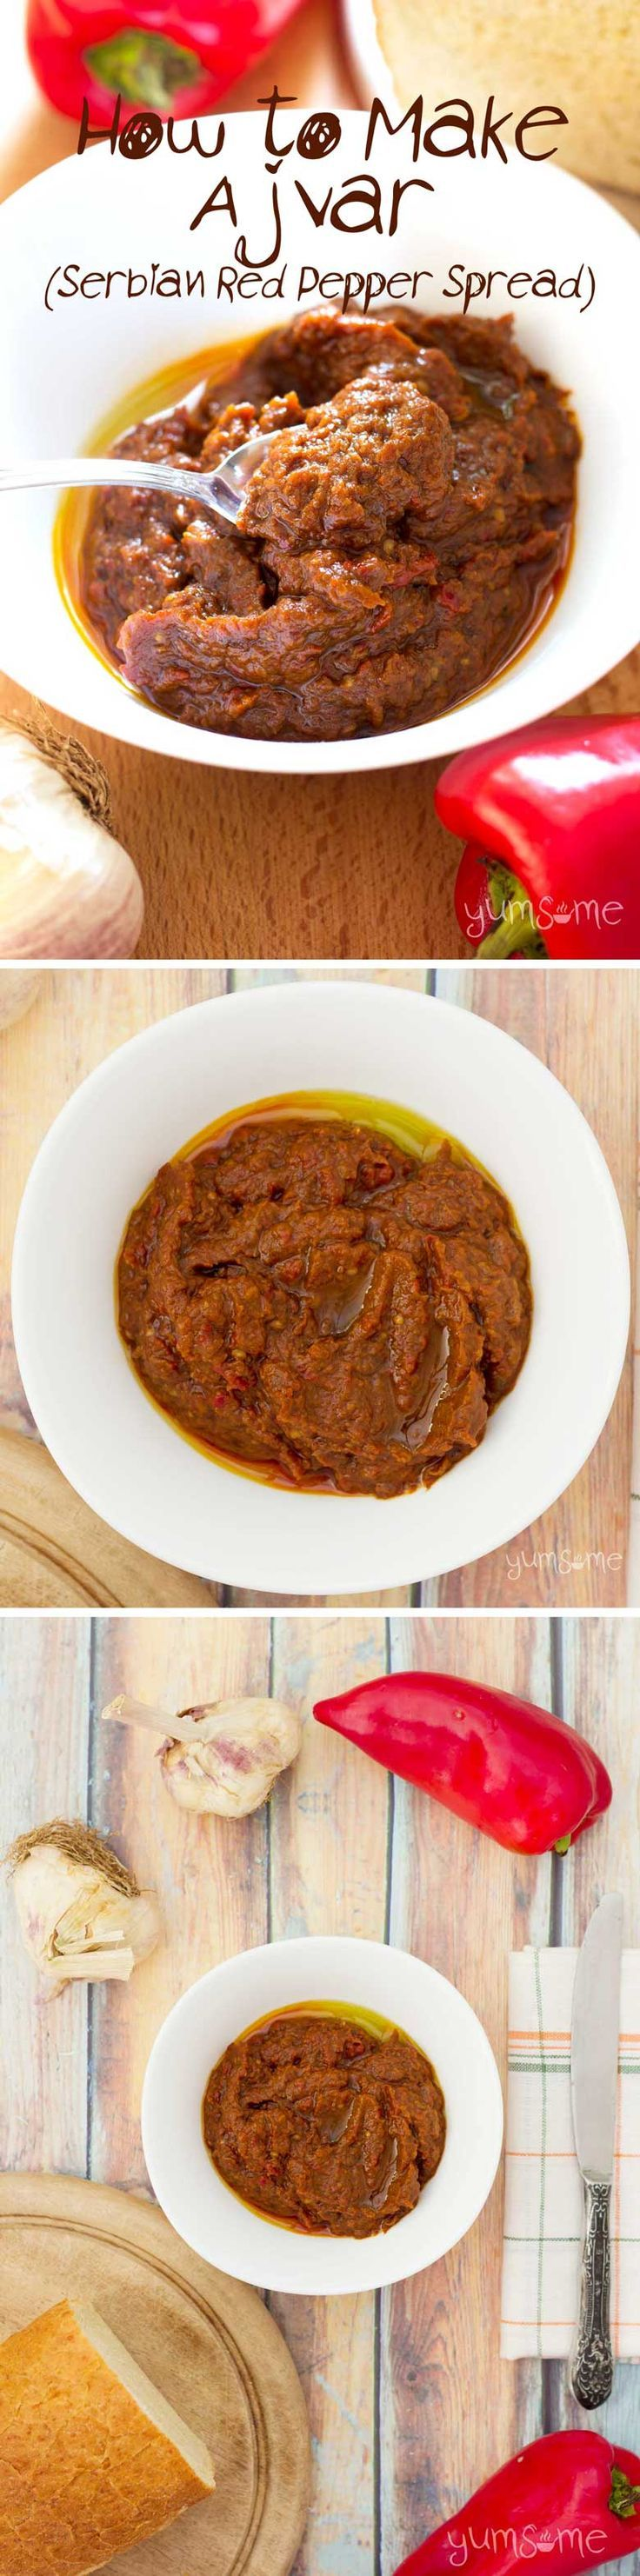 A staple of Balkan cuisine, ajvar is a delicious rich red pepper spread that's perfect with fresh rustic bread, pasta, crackers, baked potatoes, etc. | yumsome.com via @yums0me